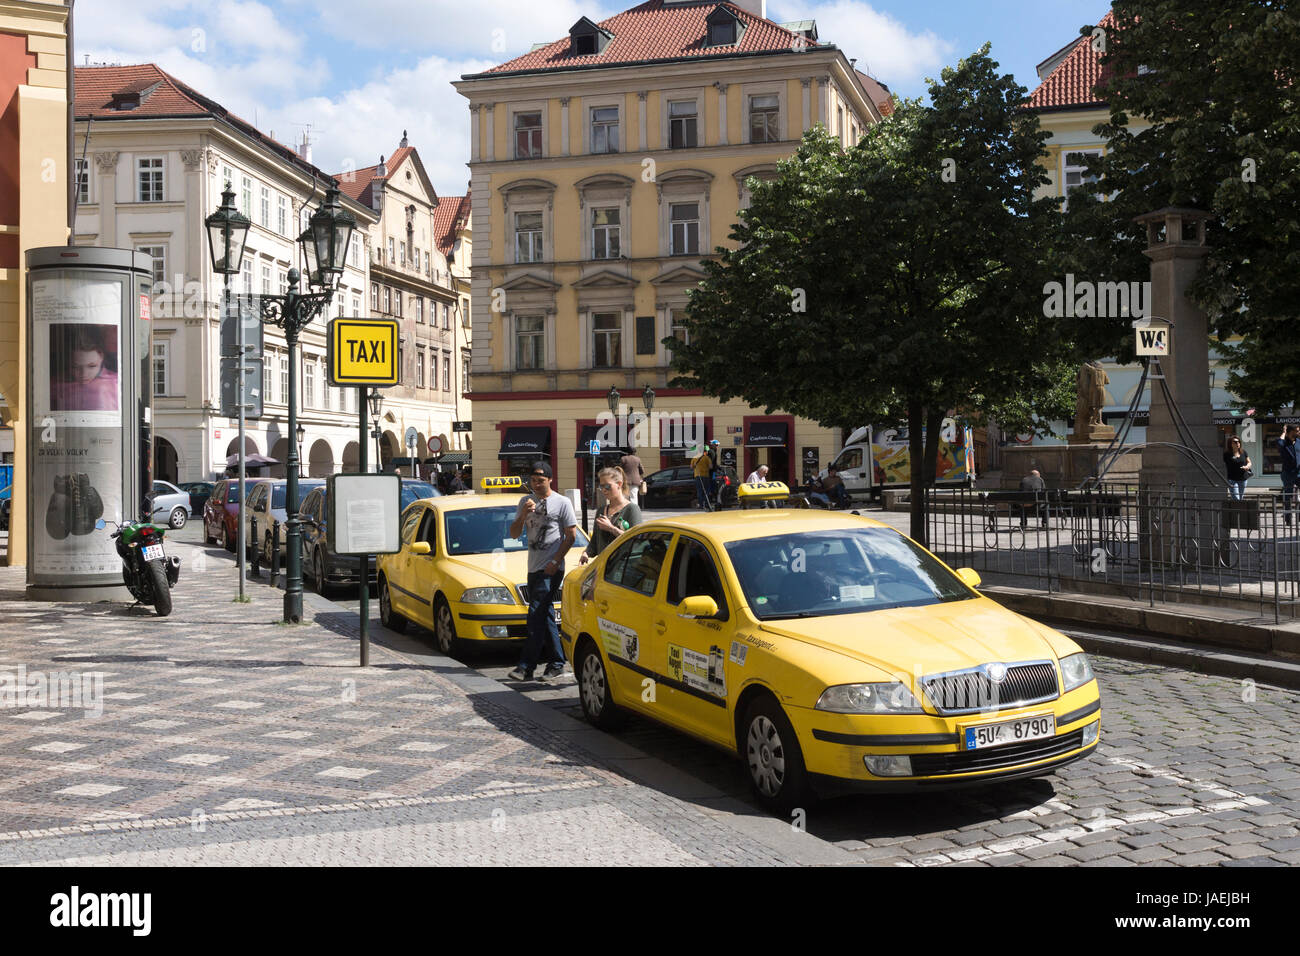 A taxi stand in Prague Old Town, Czech Republic - Stock Image